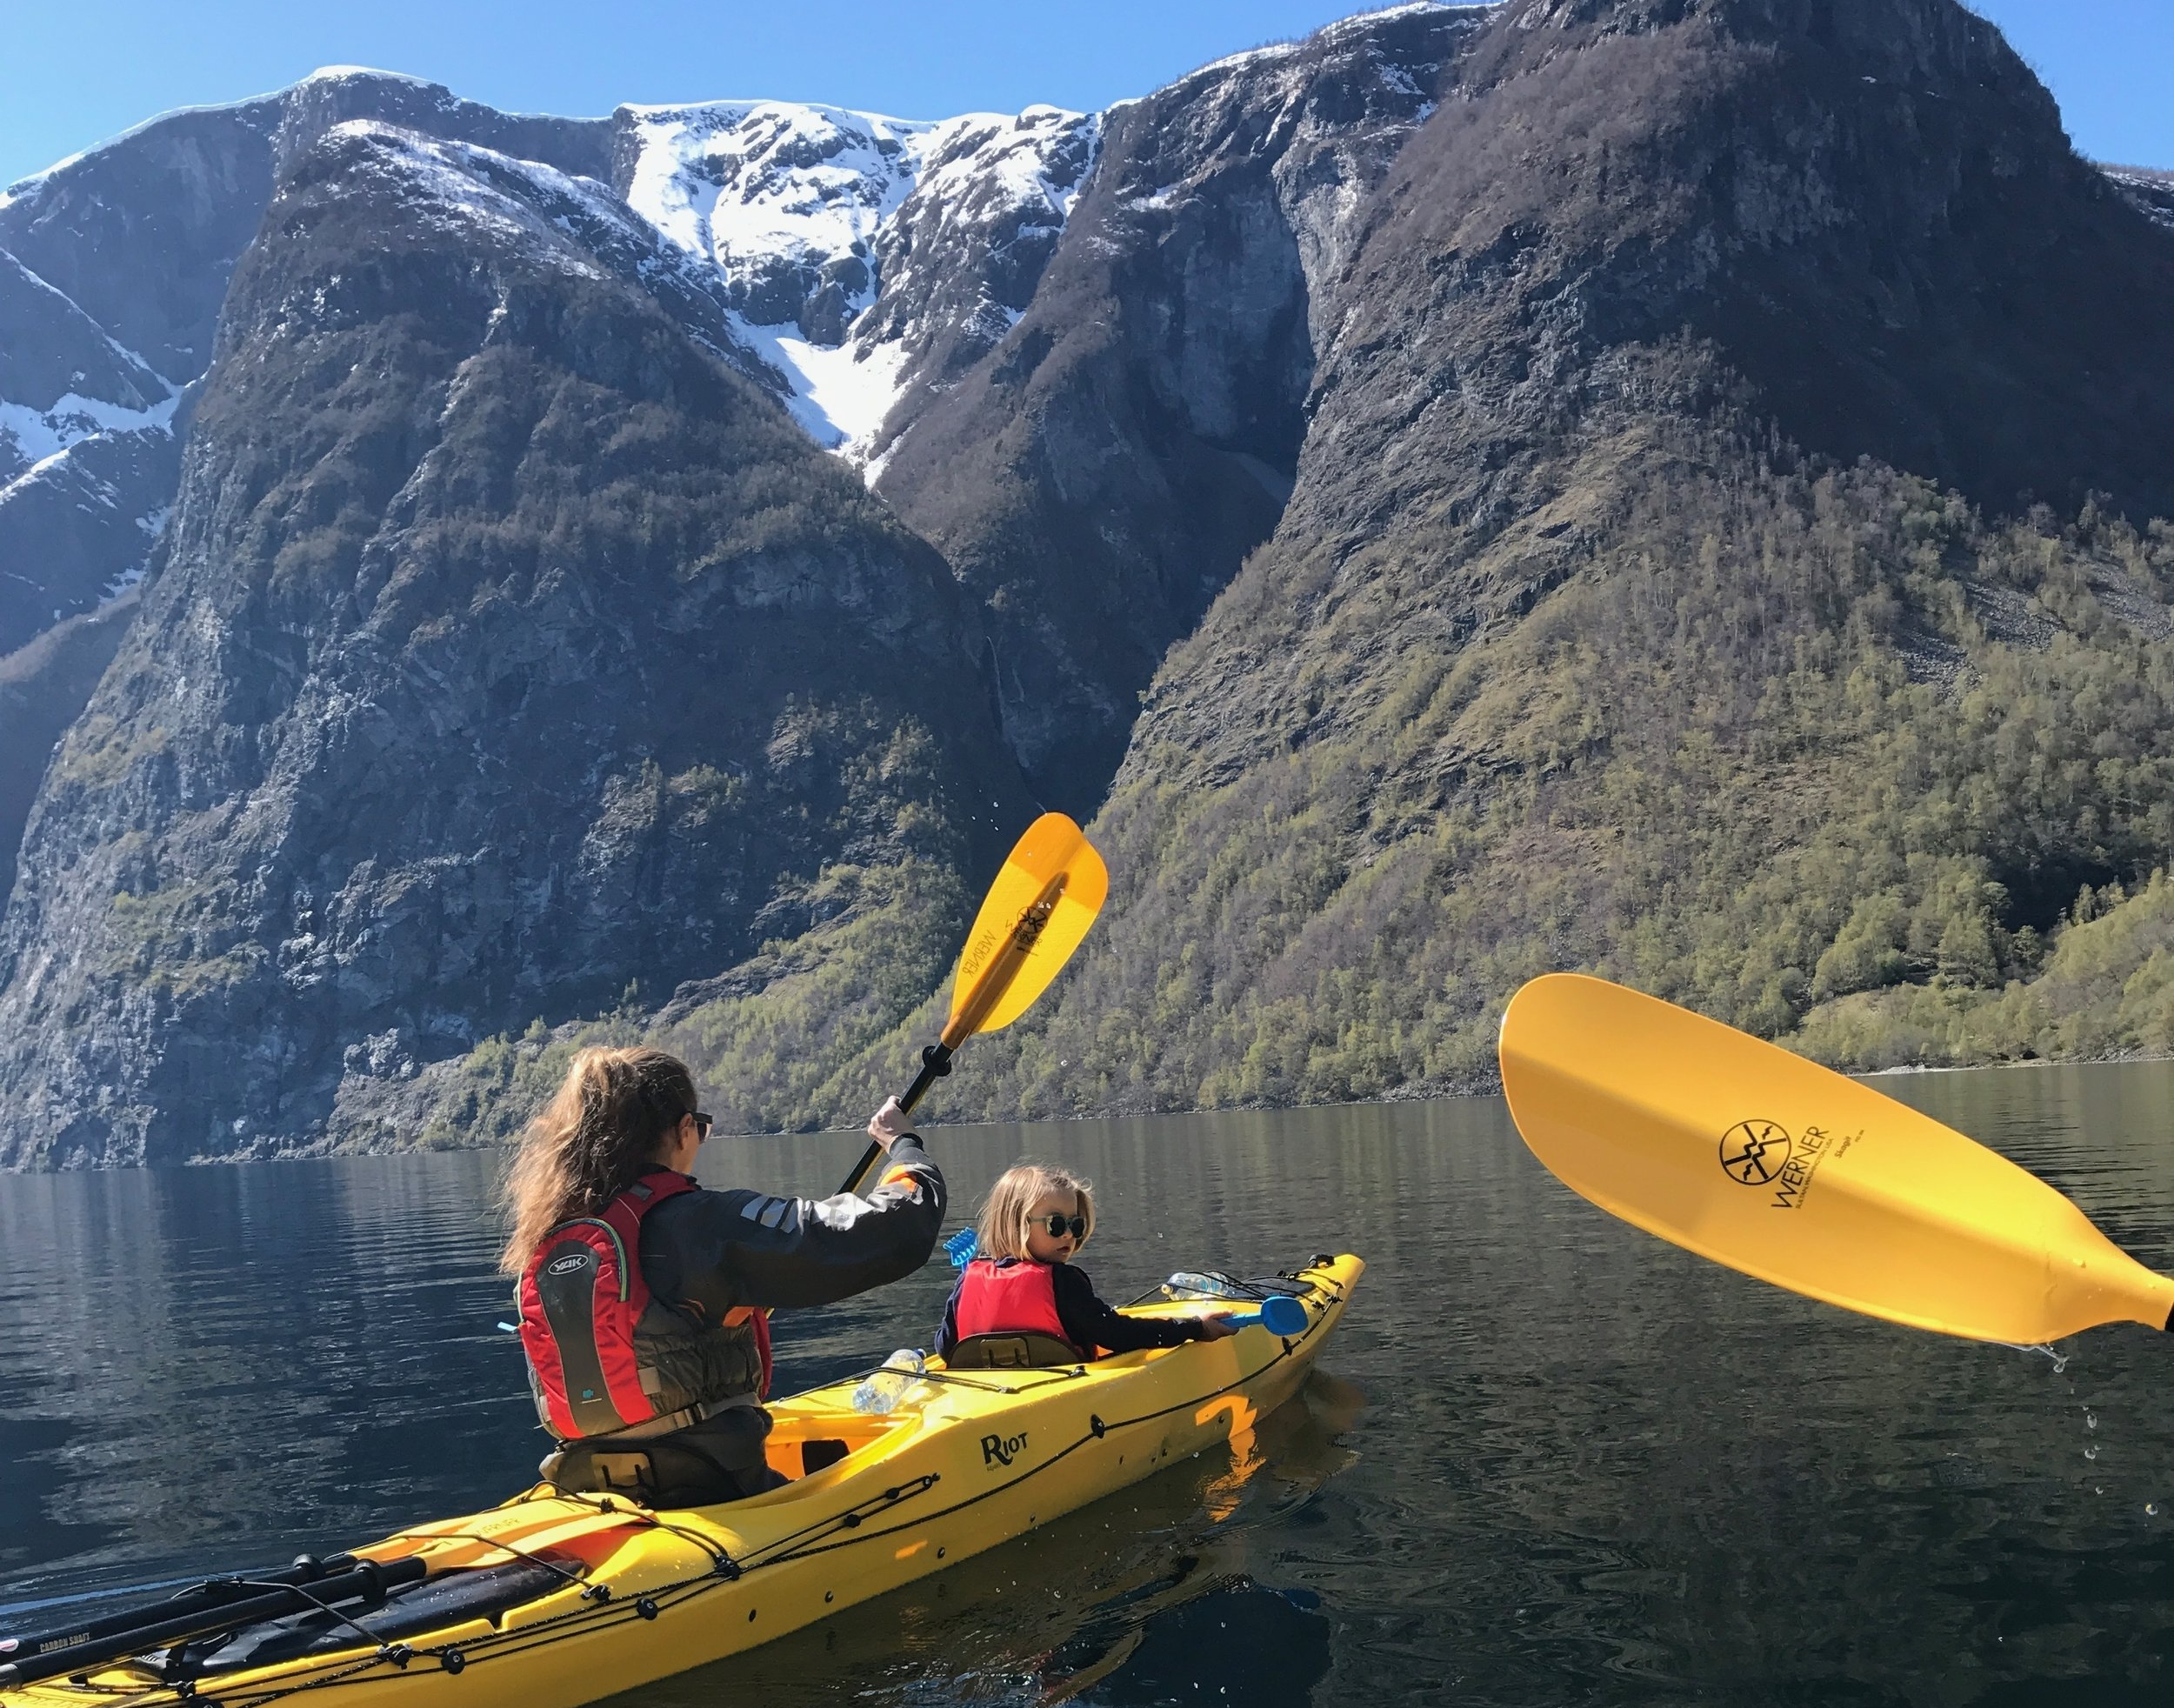 A  guided kajaking trip  in Årdal gives you spectacular views and a lot of fun. FOTO:  www.bulderogbrak.no